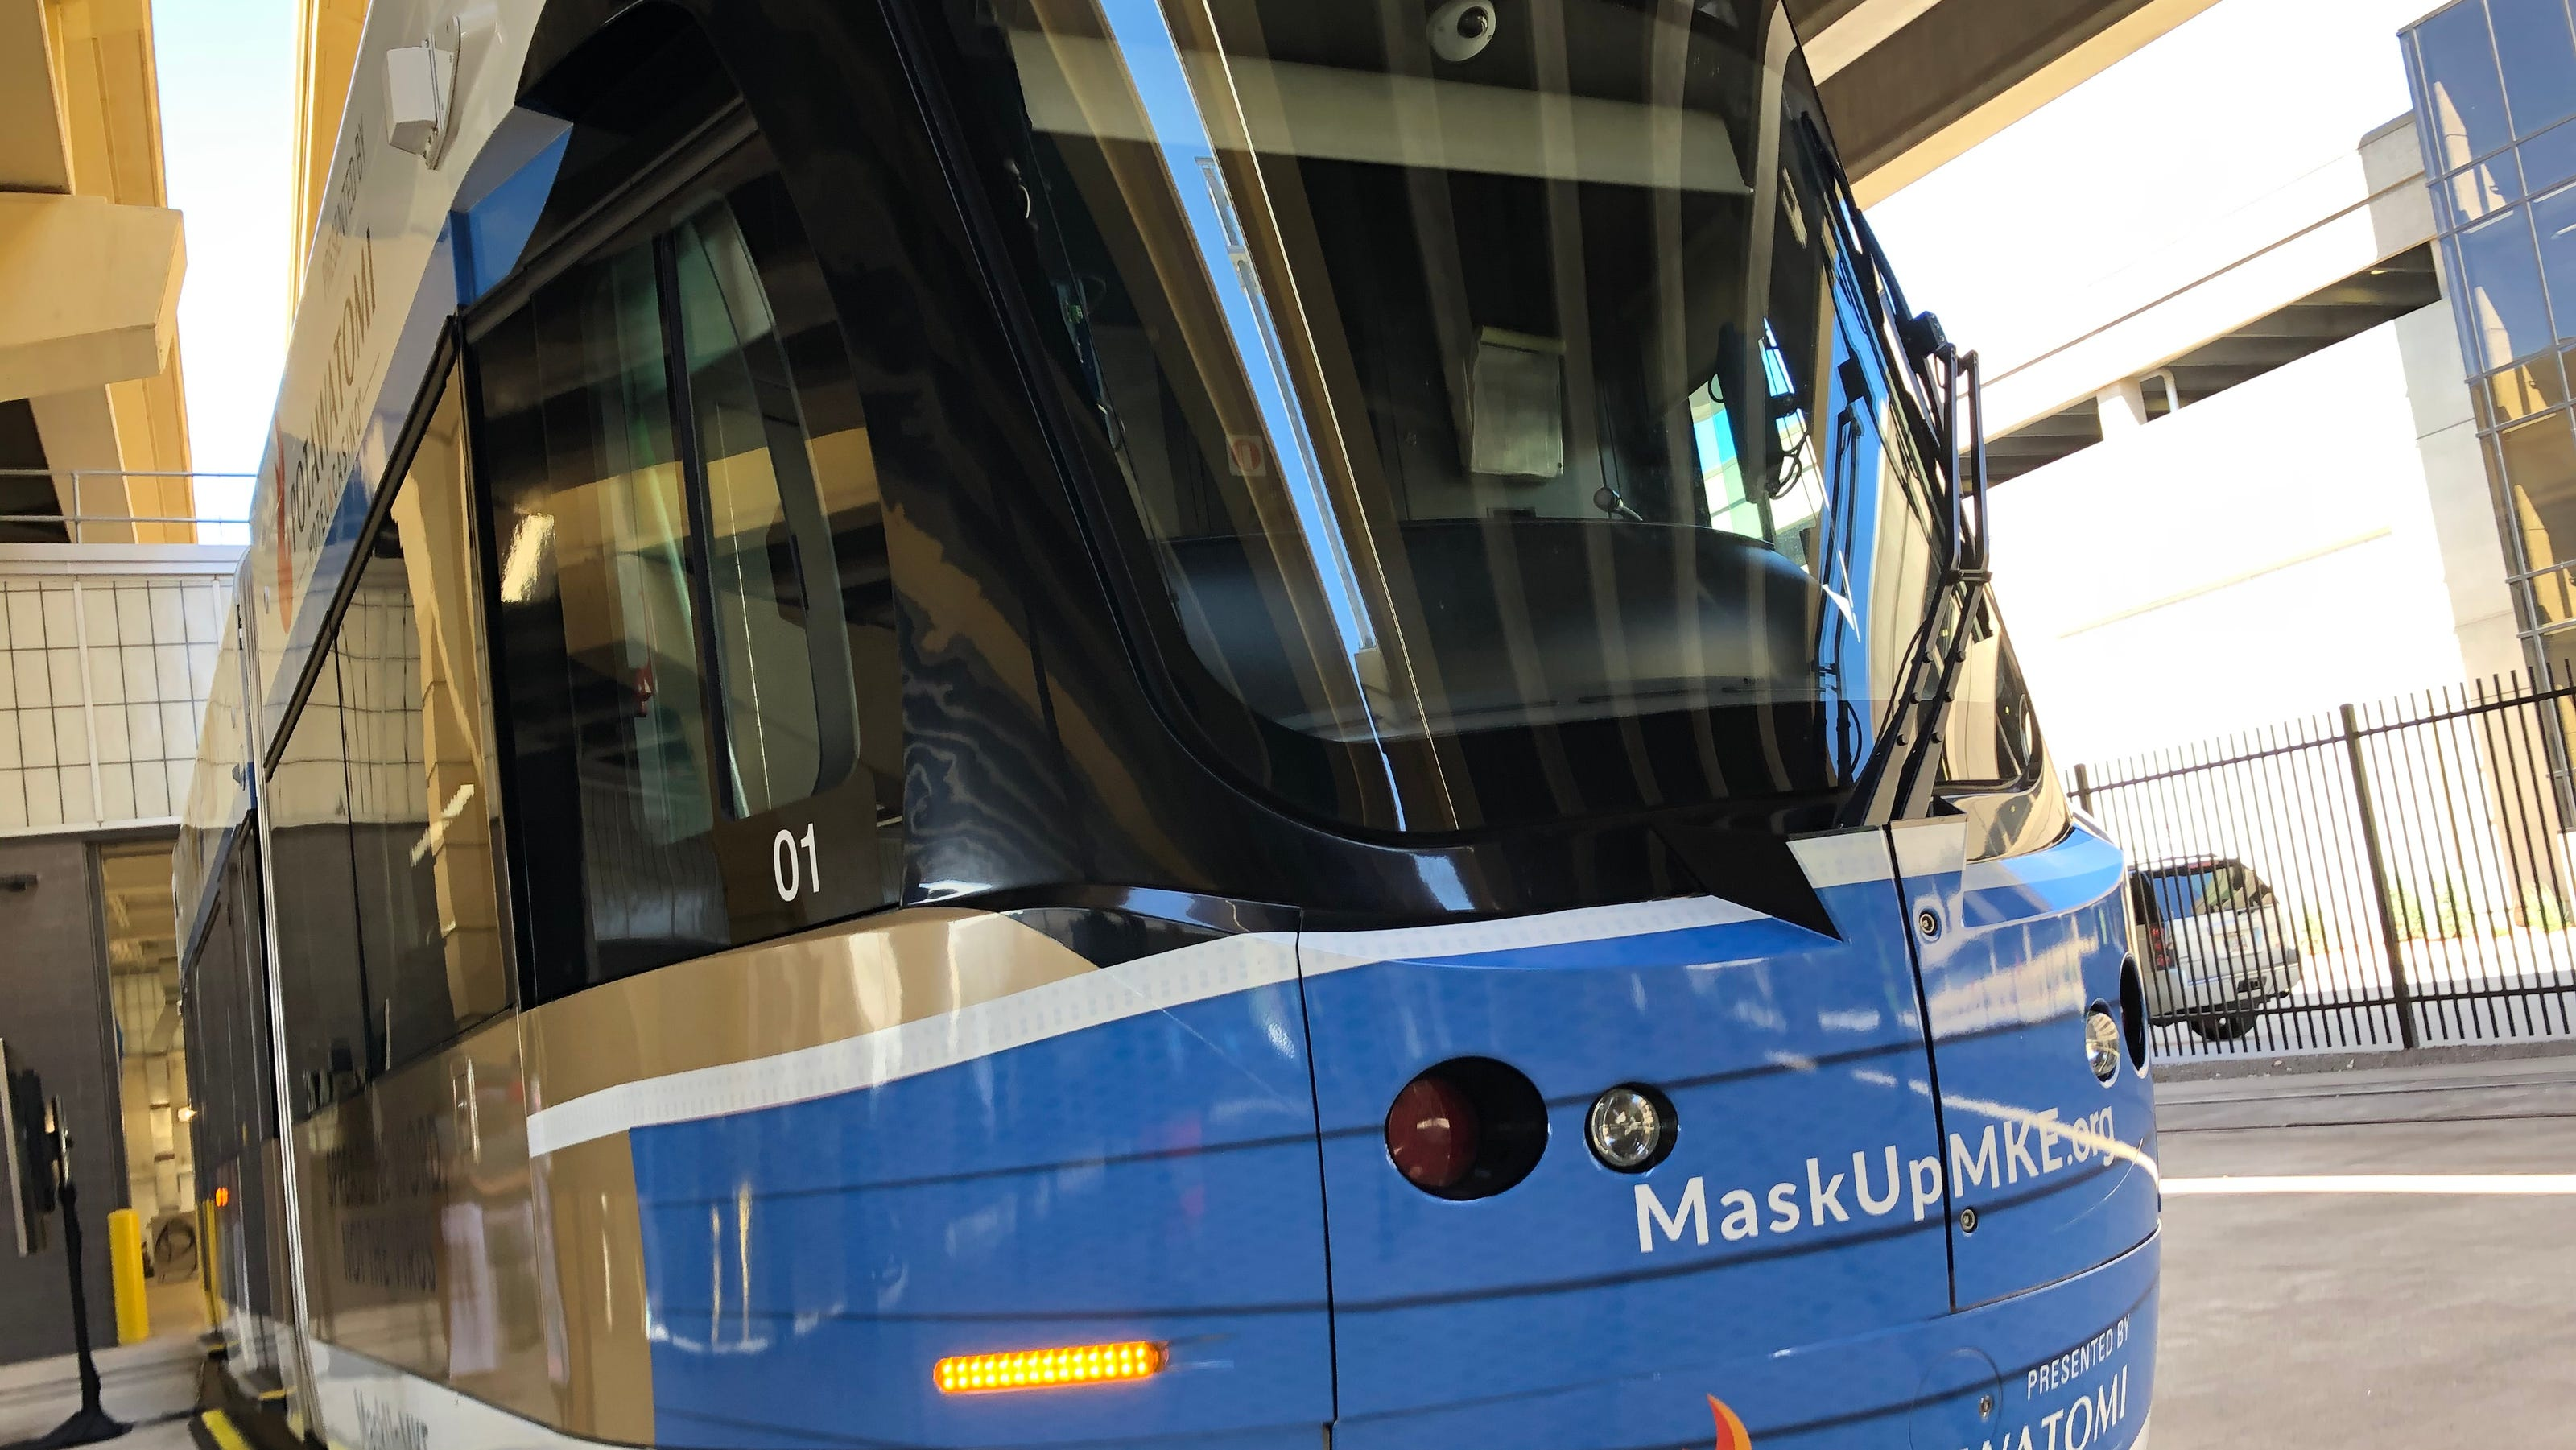 Milwaukee streetcar The Hop is now providing masks to riders